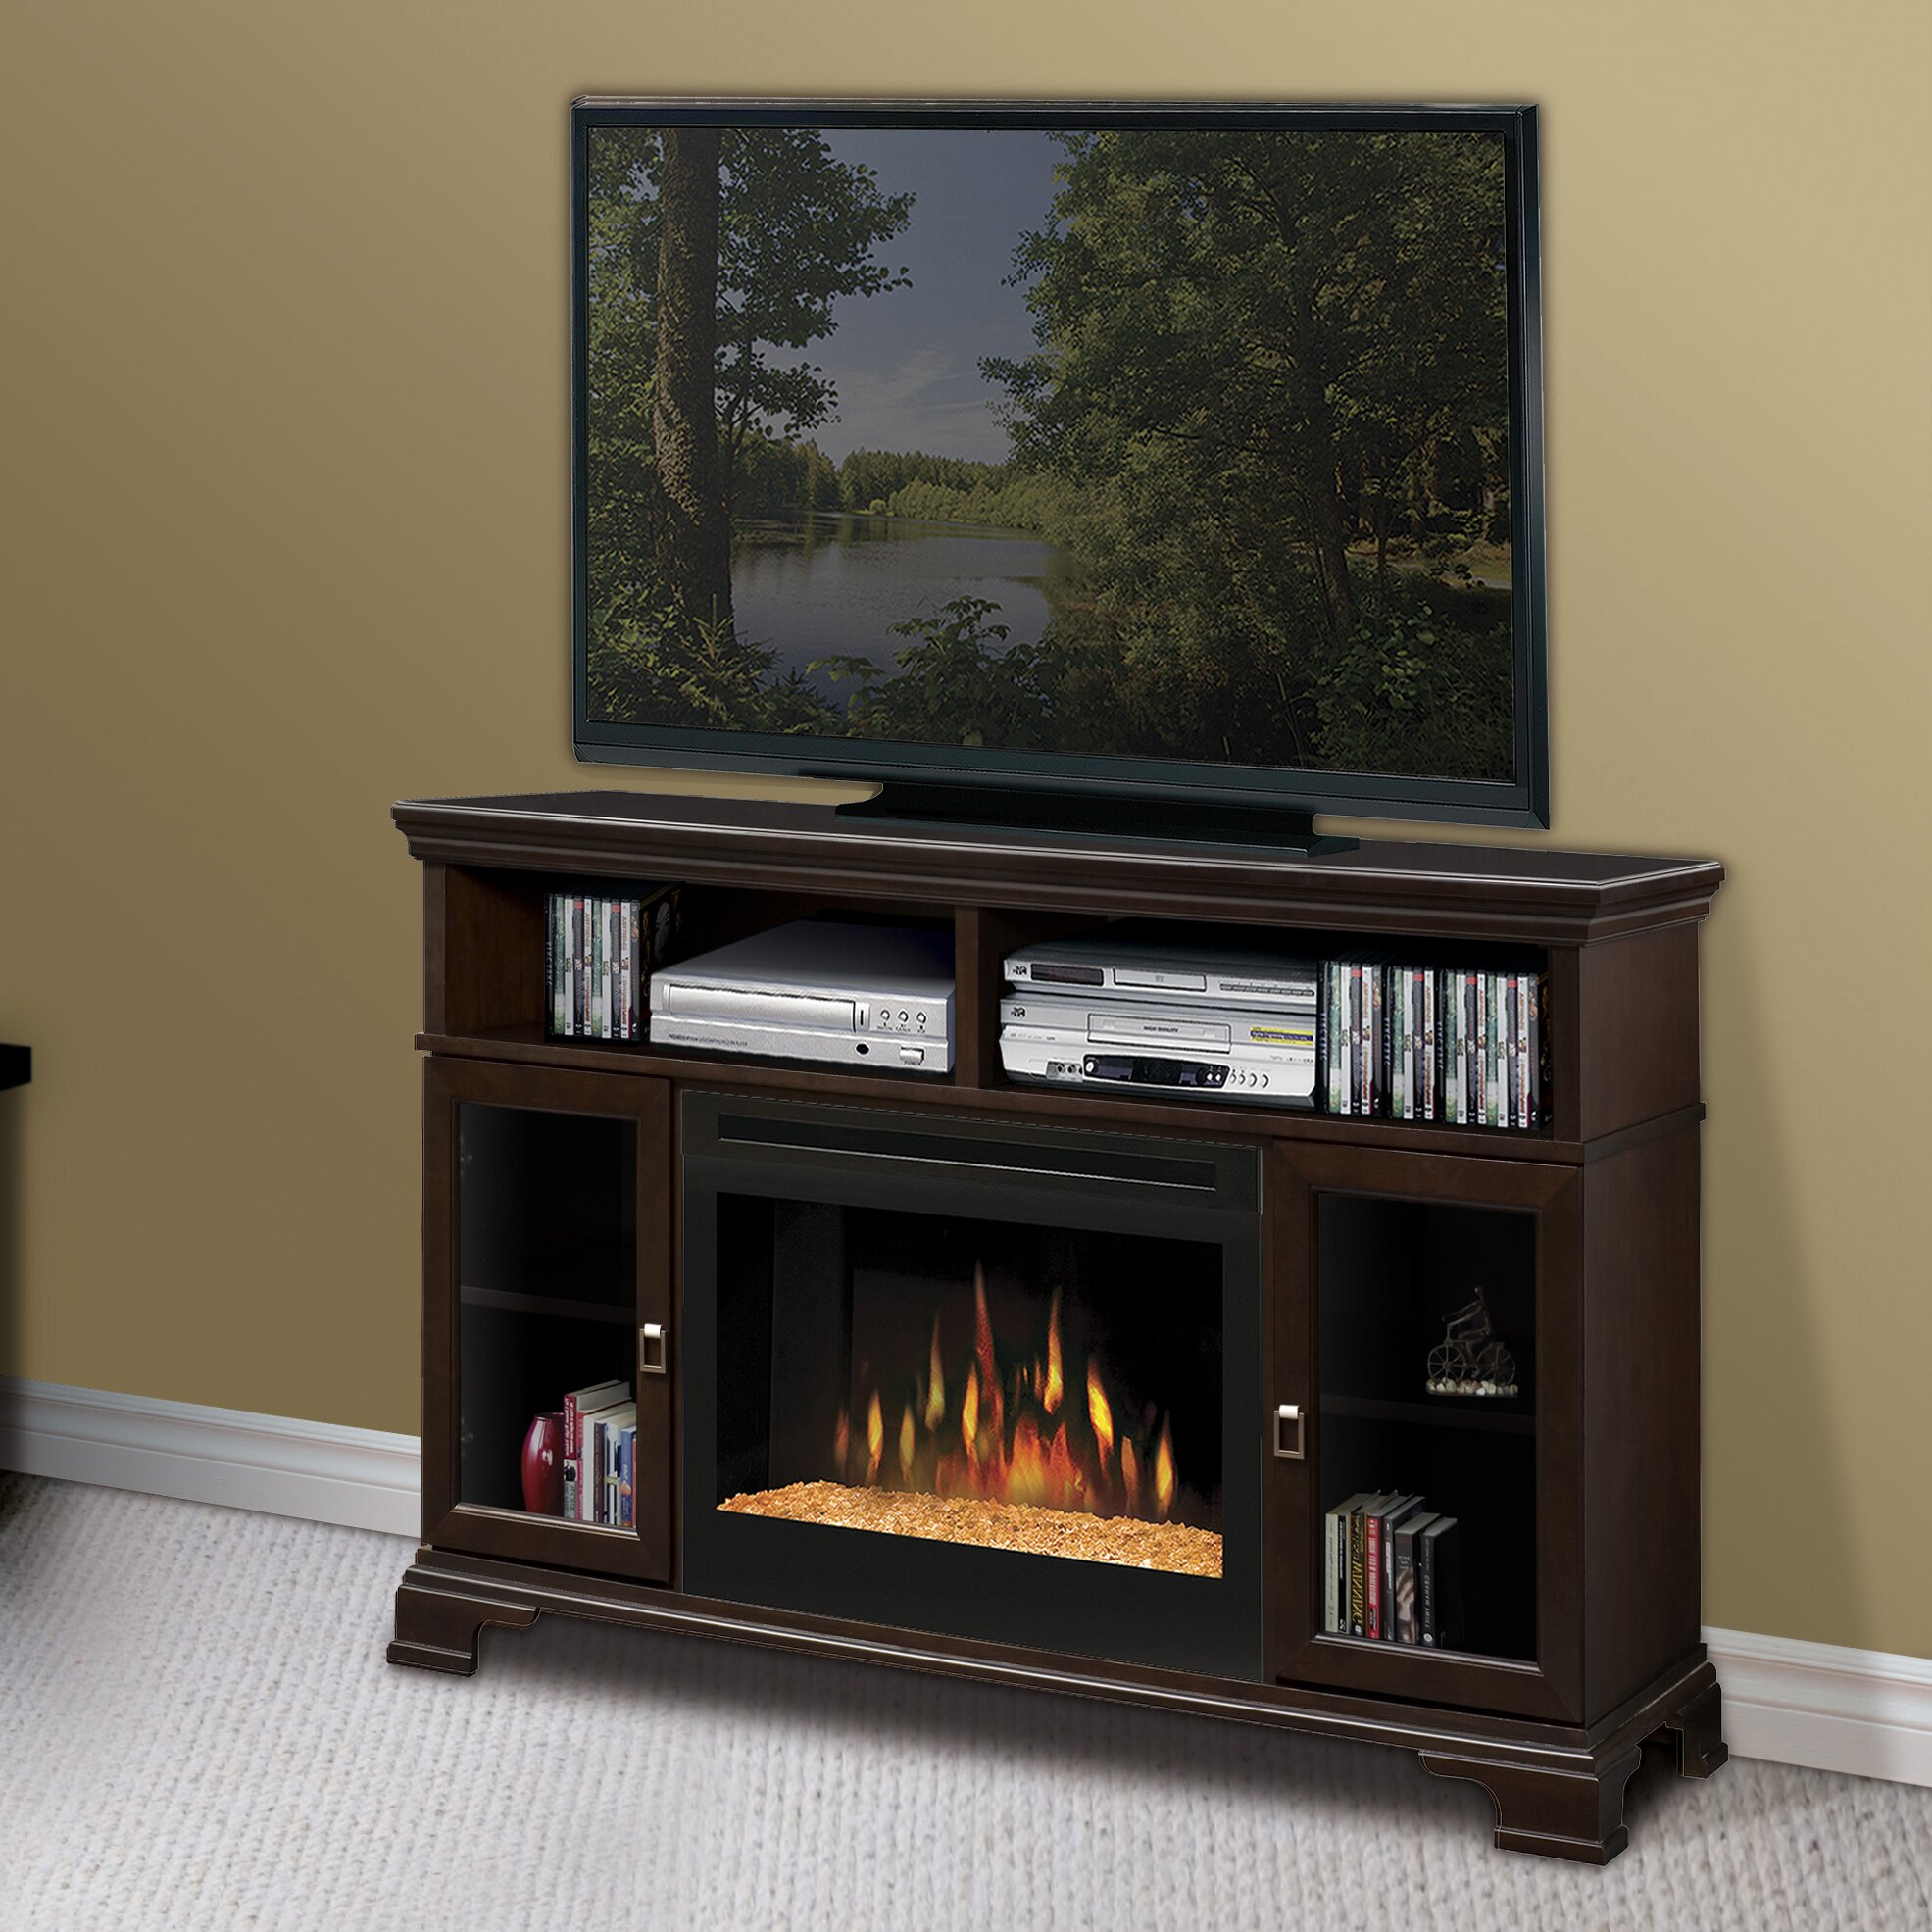 Dimplex Brookings Tv Stand With Electric Fireplace Reviews Wayfair ...